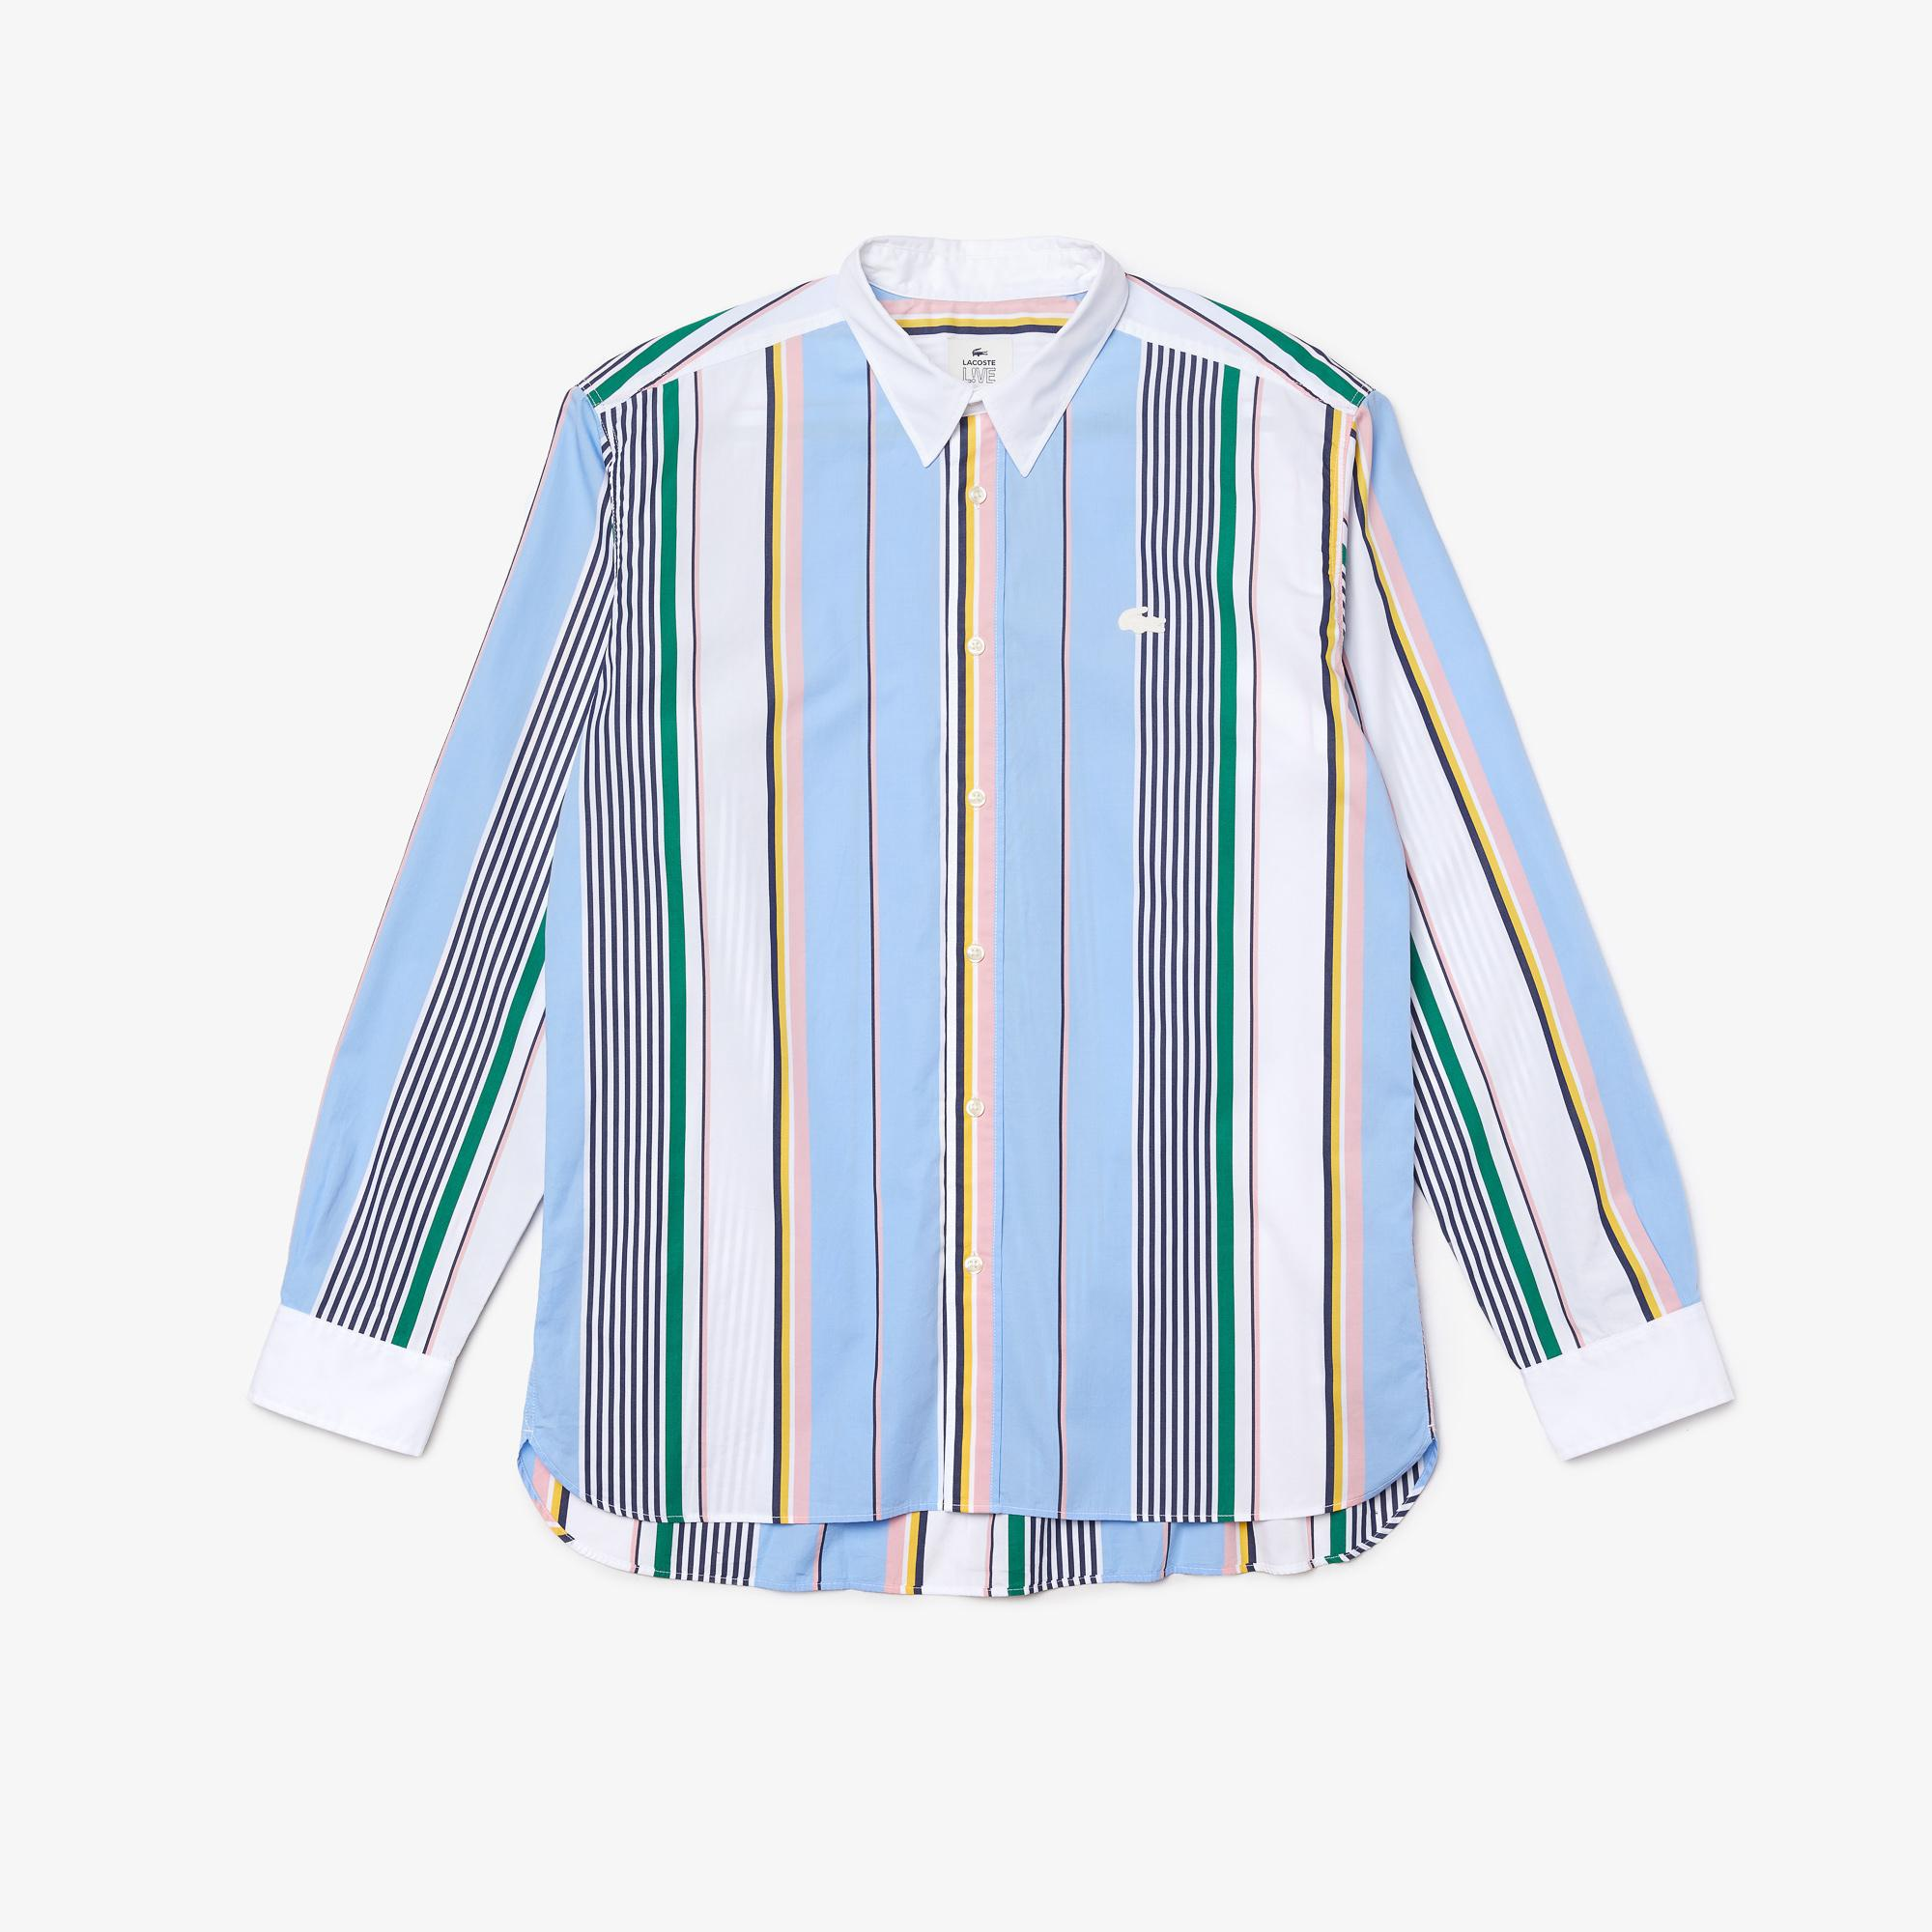 Lacoste LIVE Men's Relaxed Fit Mismatched Stripes Cotton Shirt